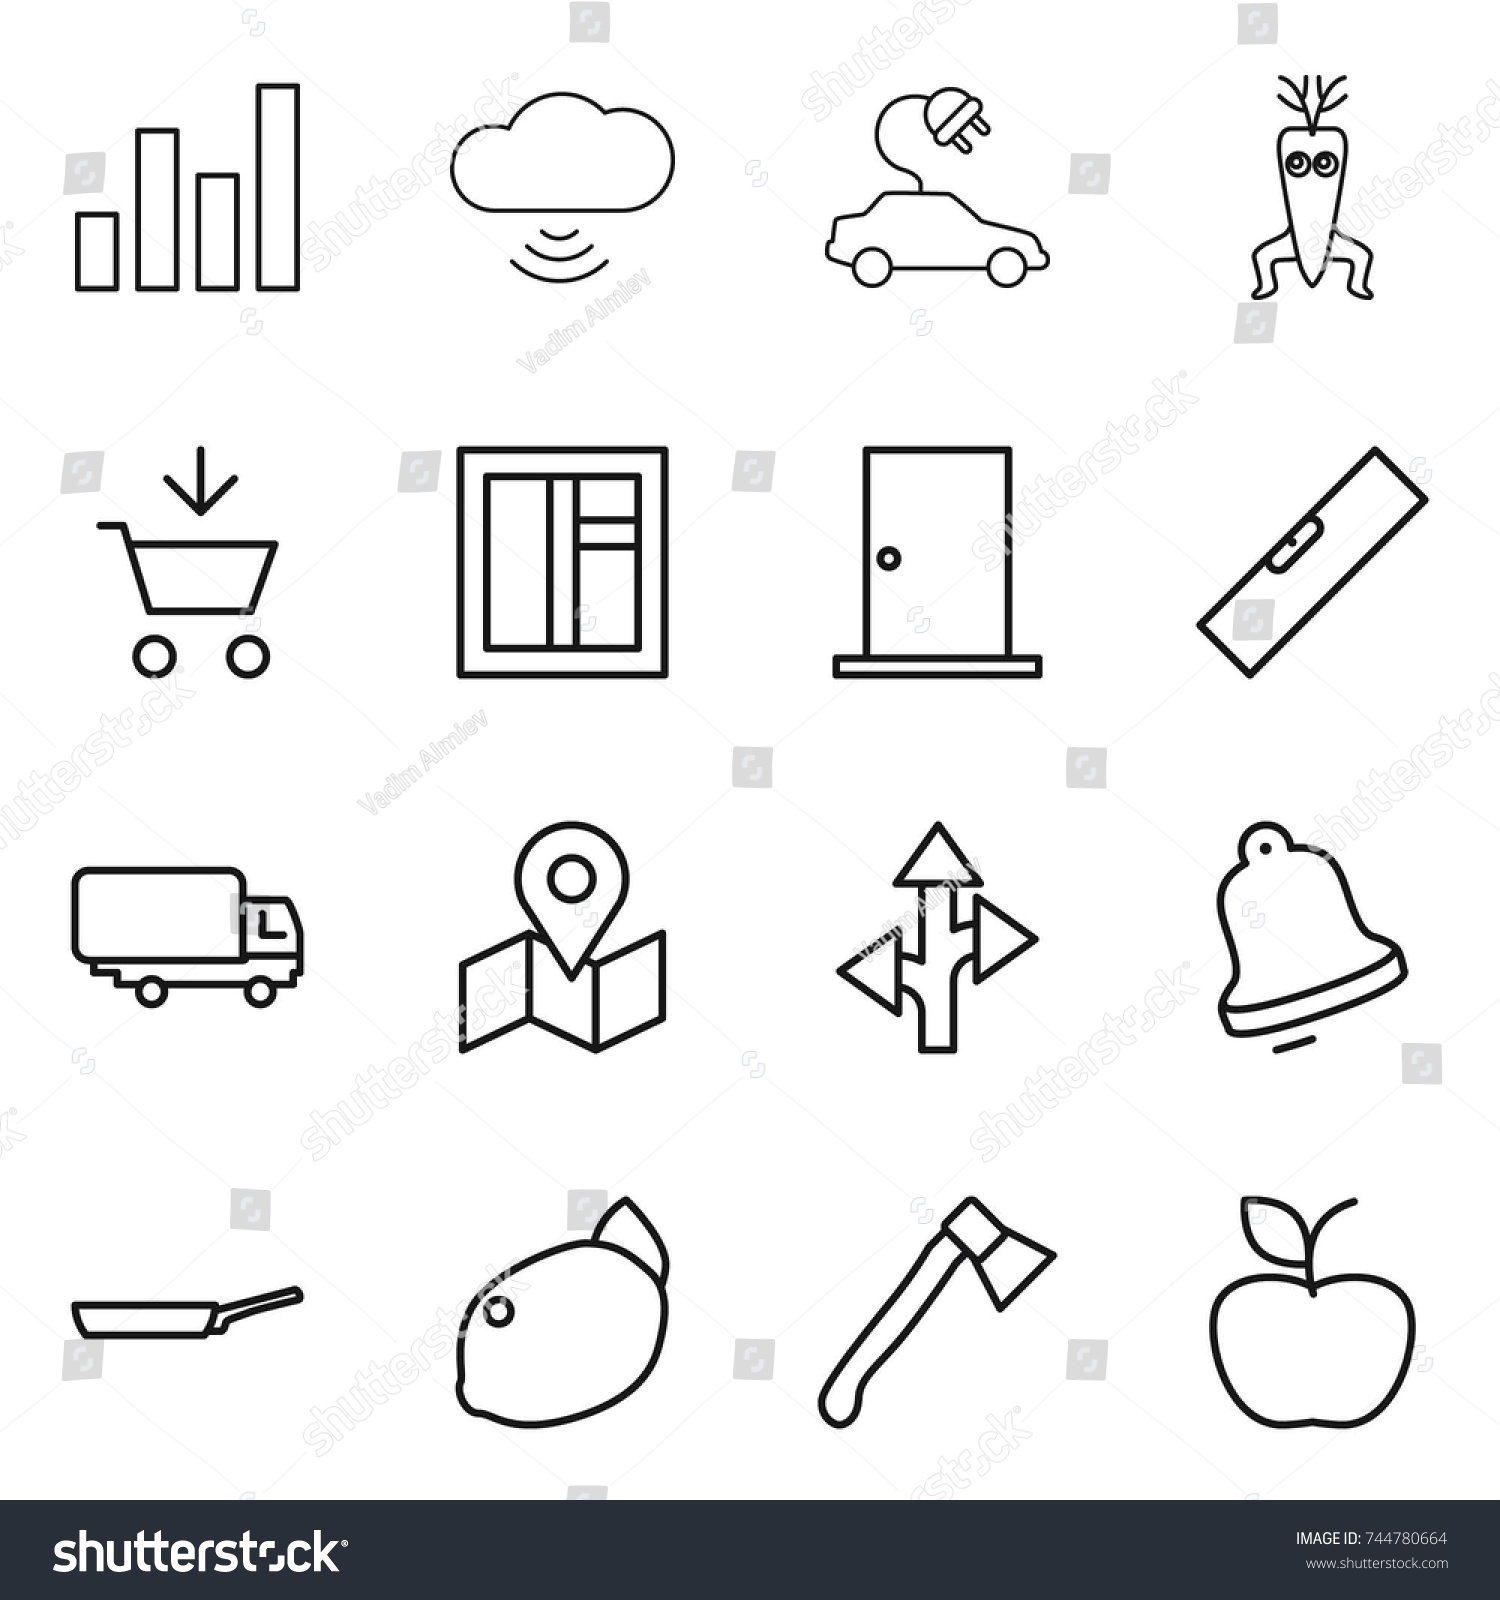 Thin Line Icon Set Graph Cloud Stock Vector 744780664 Shutterstock Electric Car Window Diagram Wireless Dna Modify